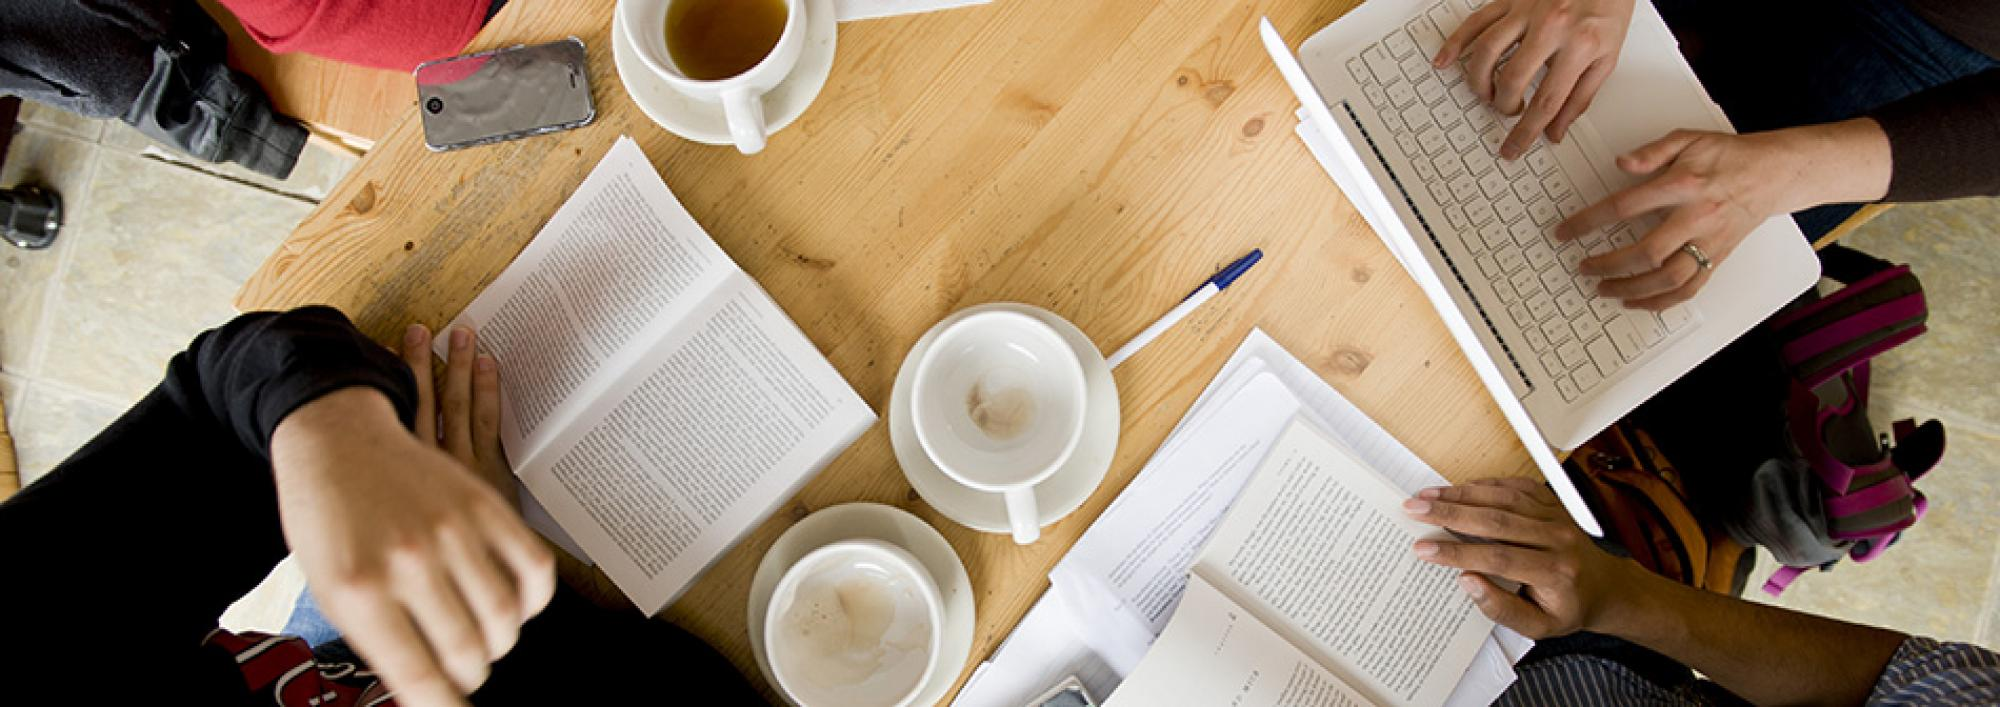 Coffee cups, books, pens, and paper are strewn around a table